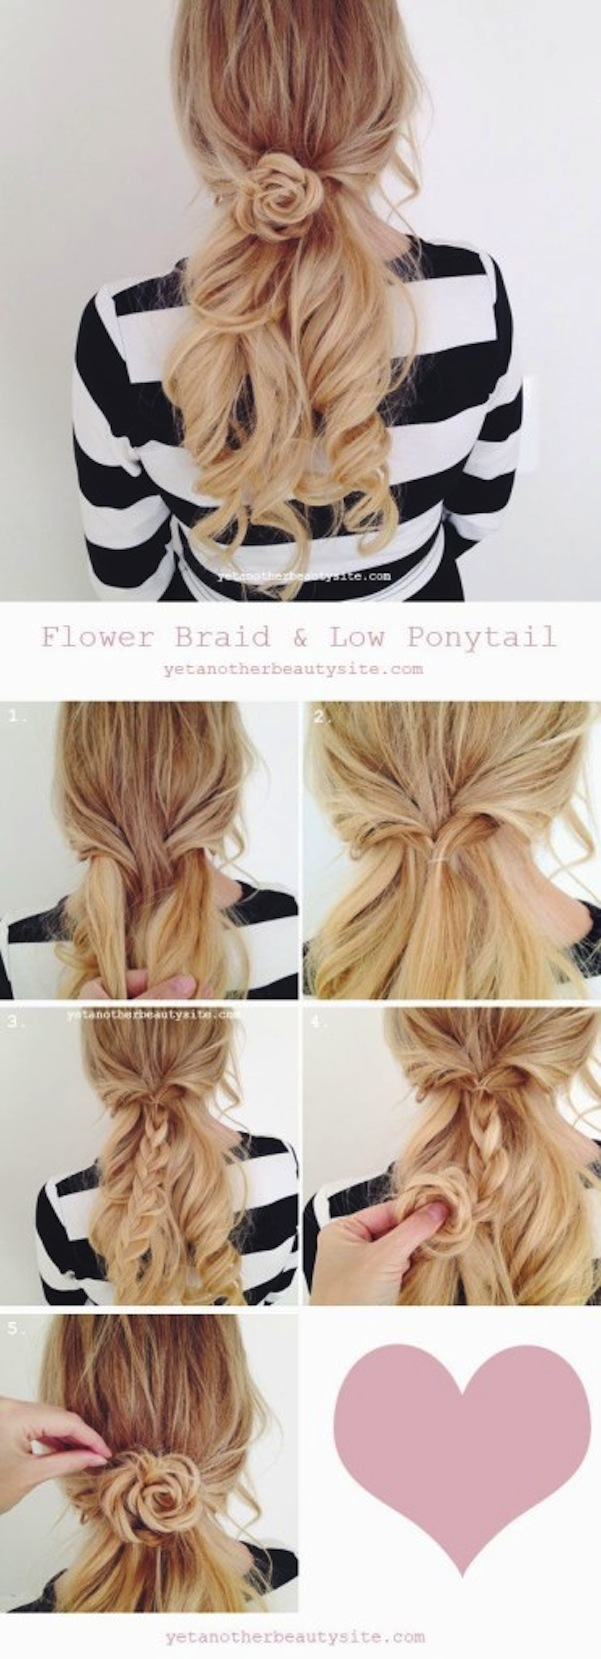 Braided flower hair